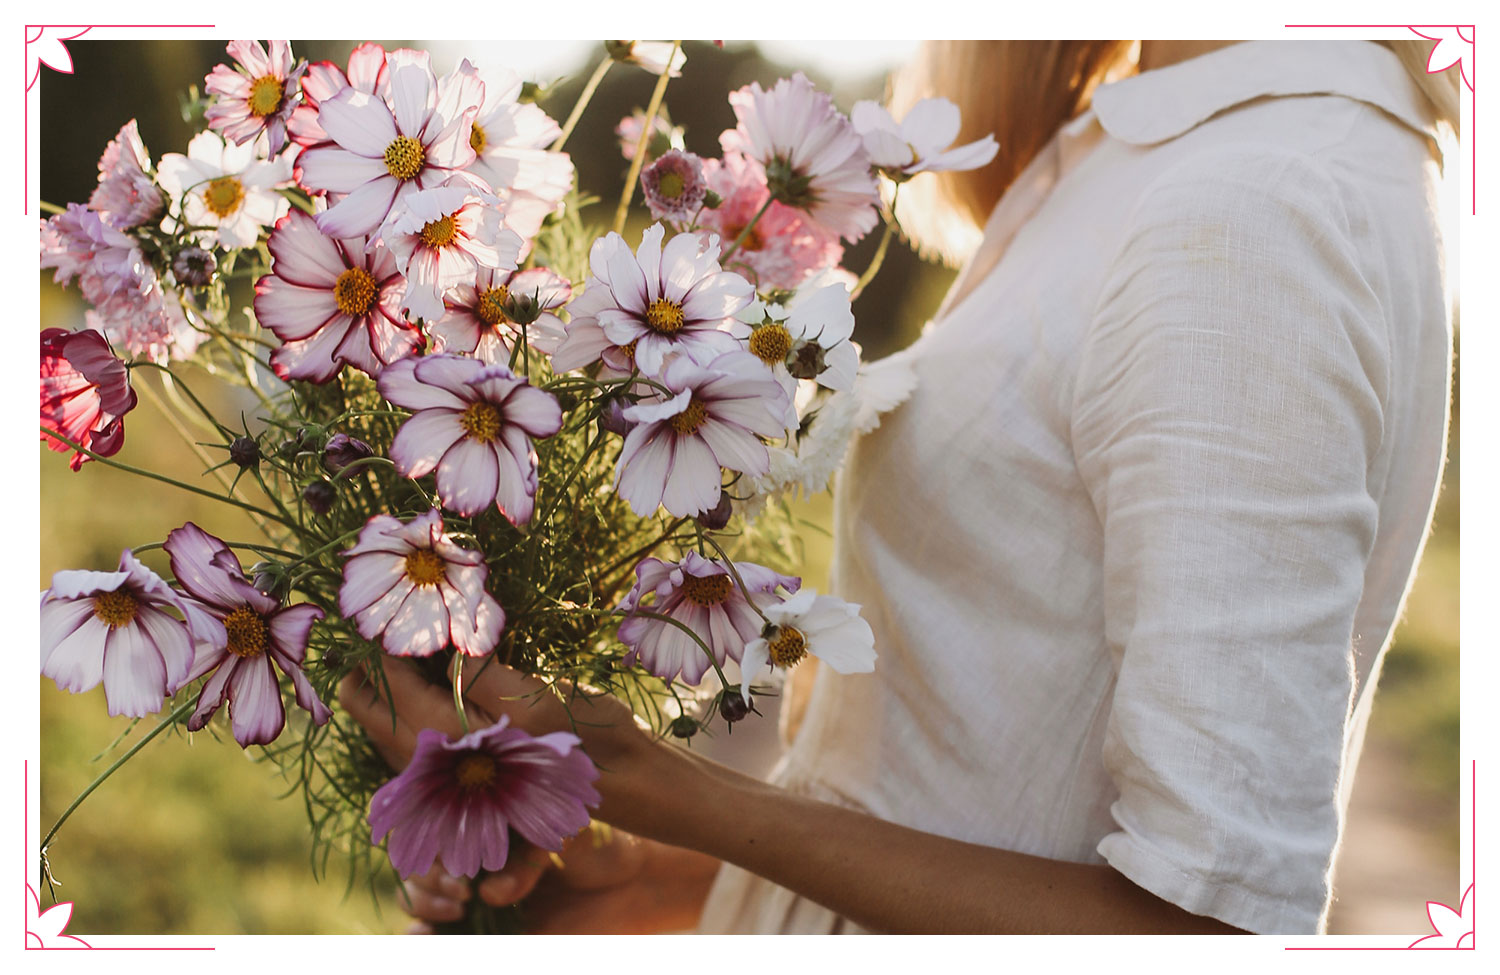 woman holding cosmos flowers